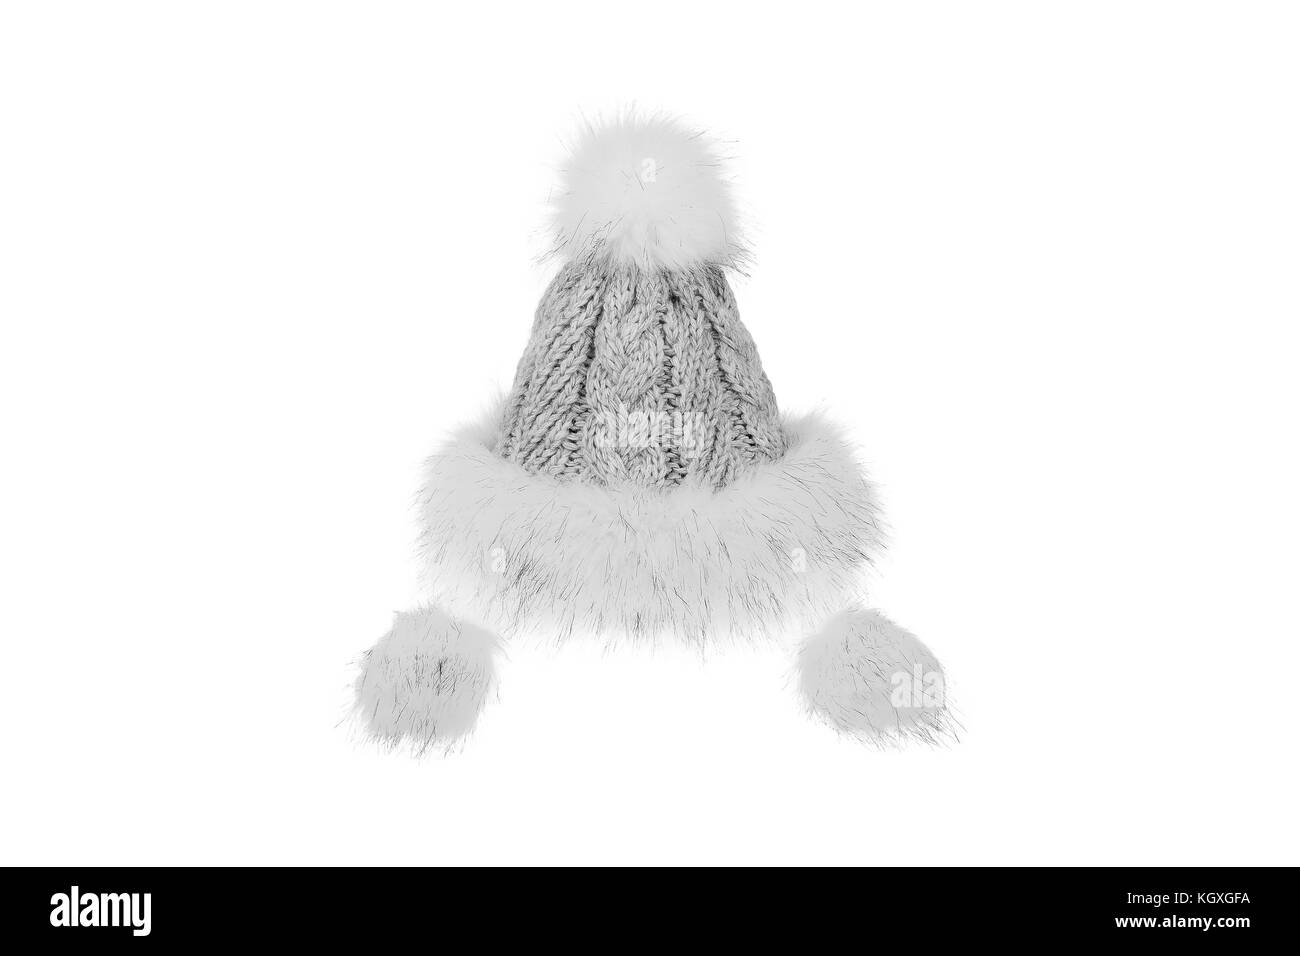 Knitted winter hat with fur isolated on white background. - Stock Image